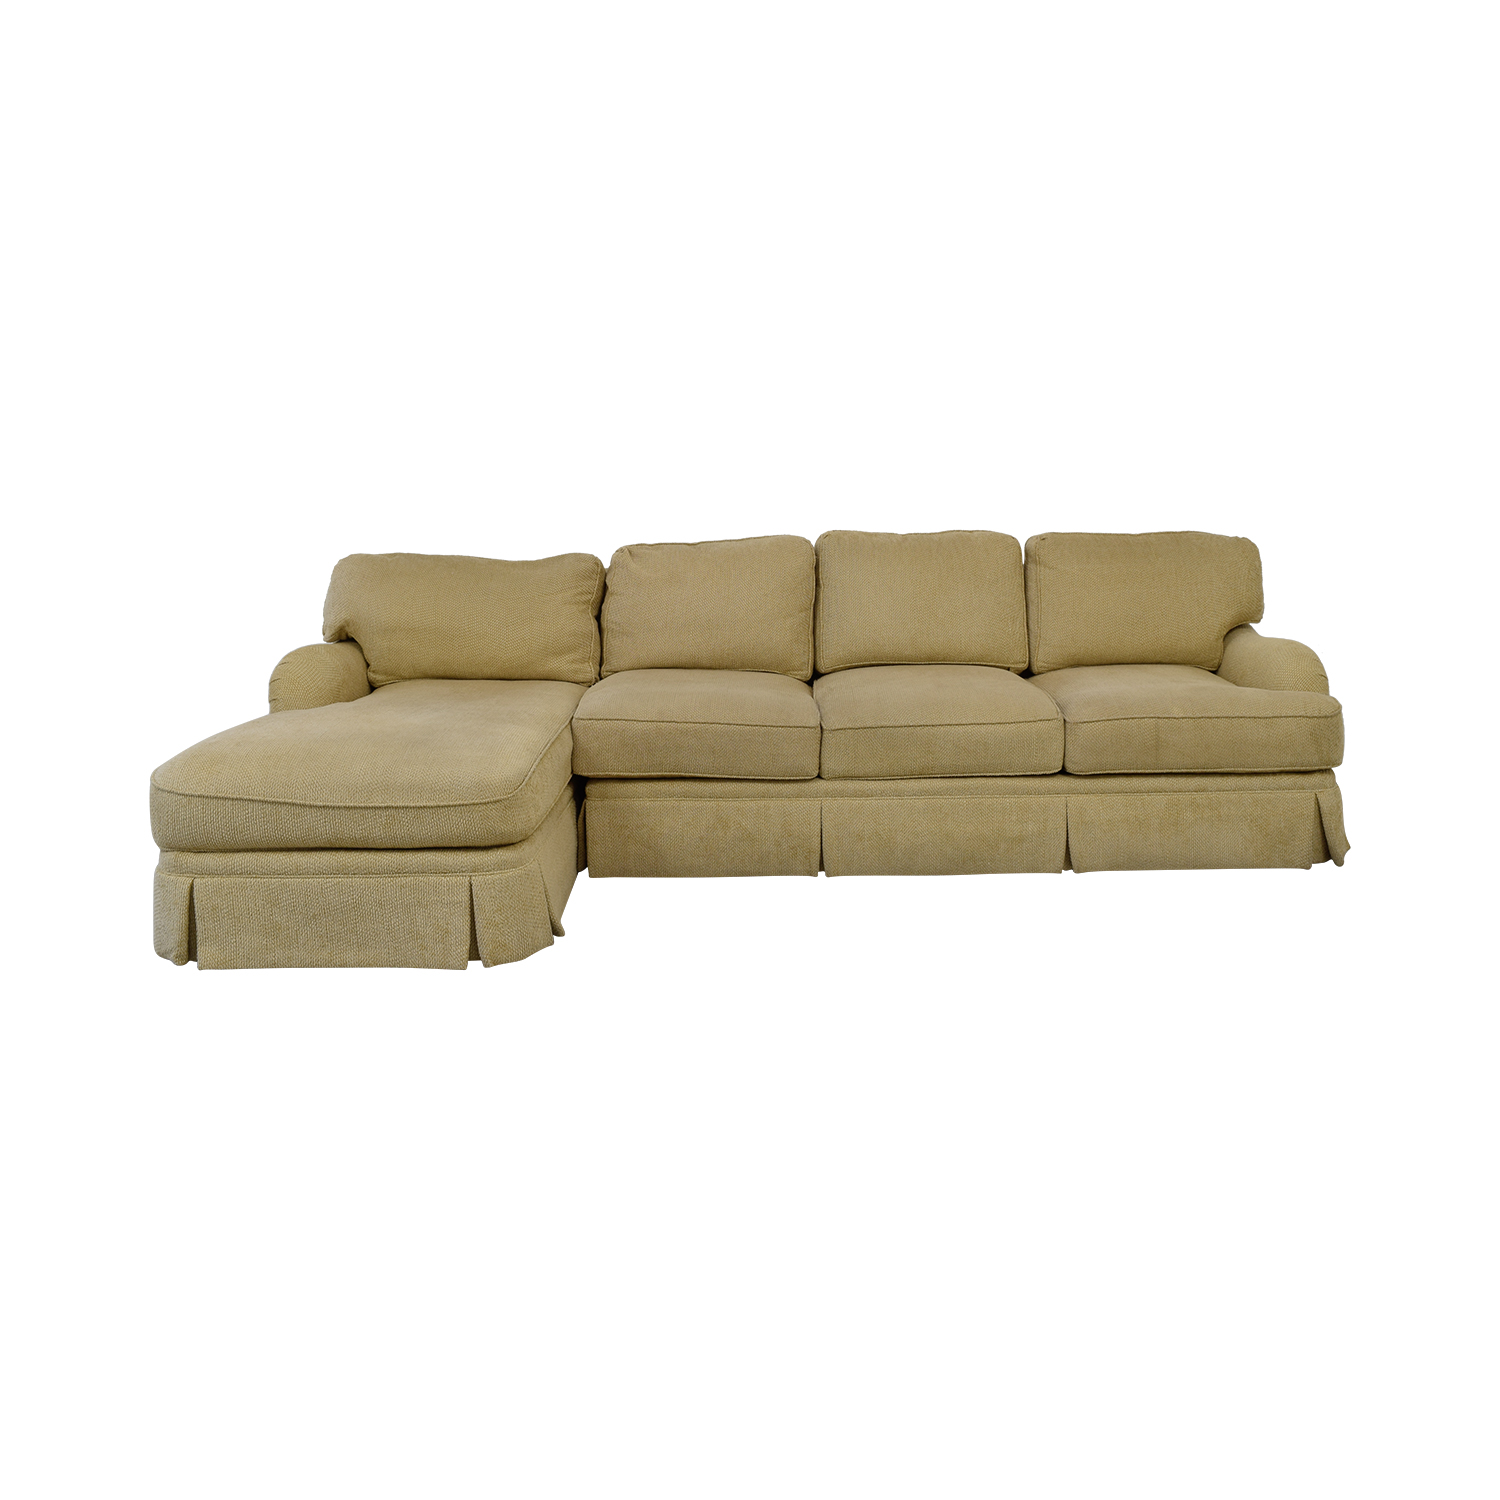 shop C R Laine Beige Skirted Chaise Sectional C R Laine Sofas